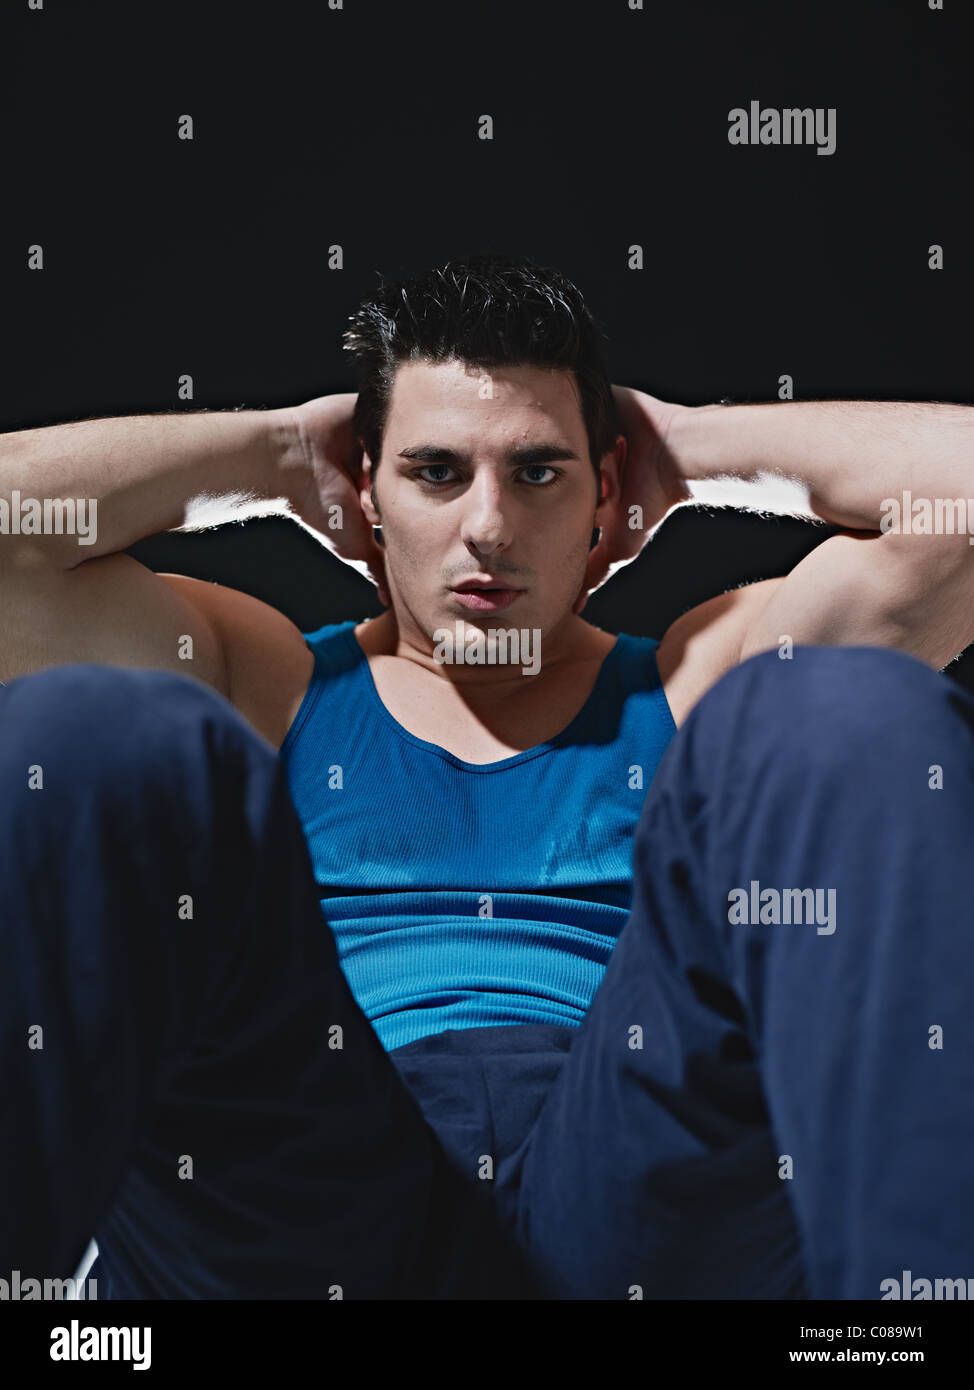 young adult caucasian male in blue sportswear exercising abdominals on black background, looking at camera. Stock Photo